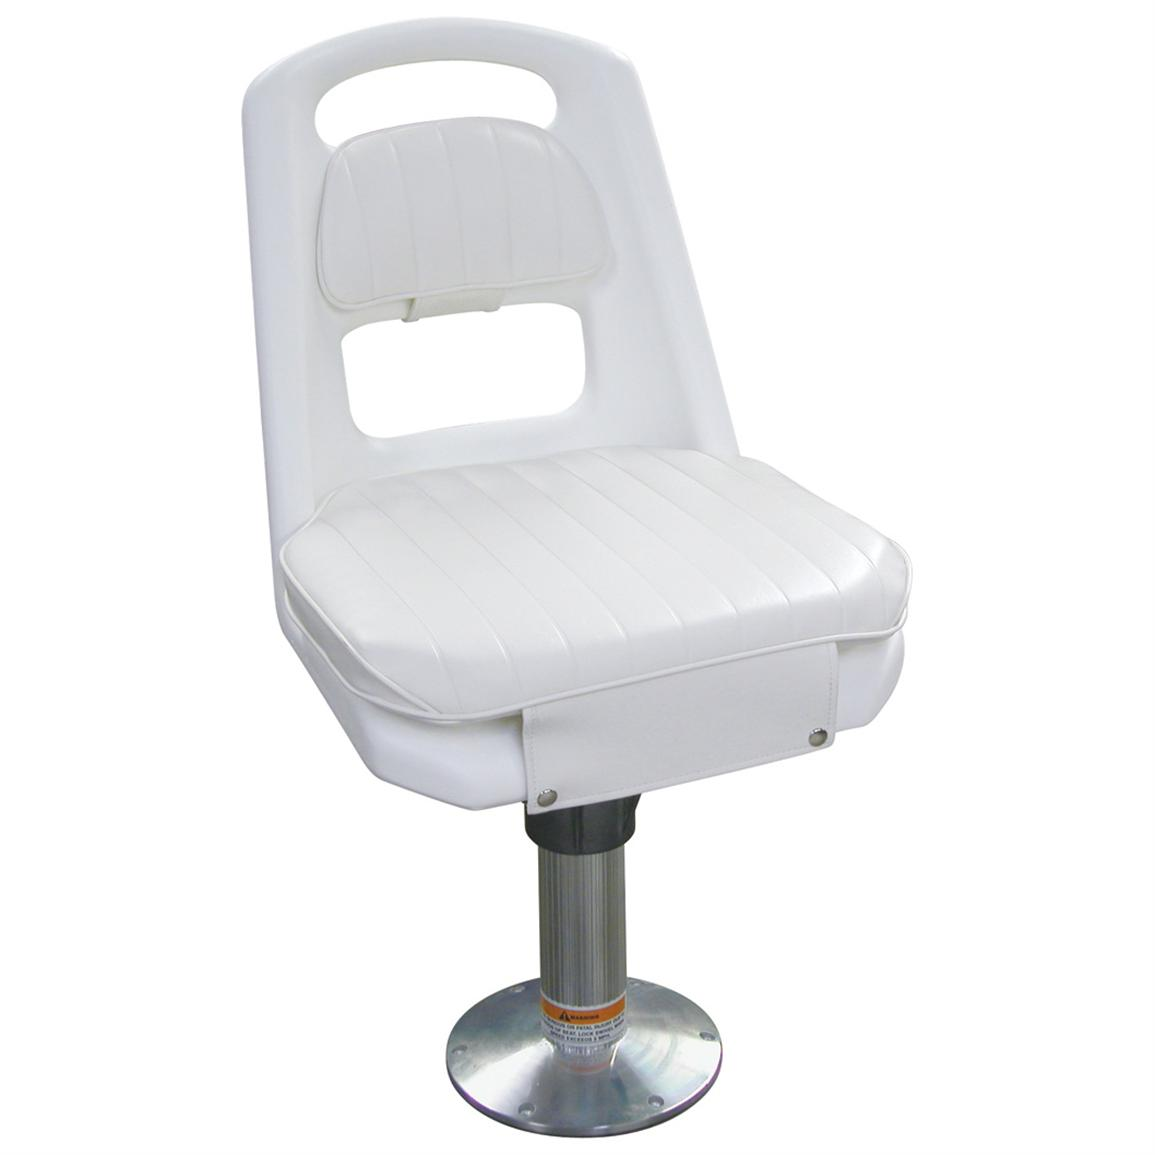 Helm Chairs Wise Offshore Helm Chair With Pedestal White 141417